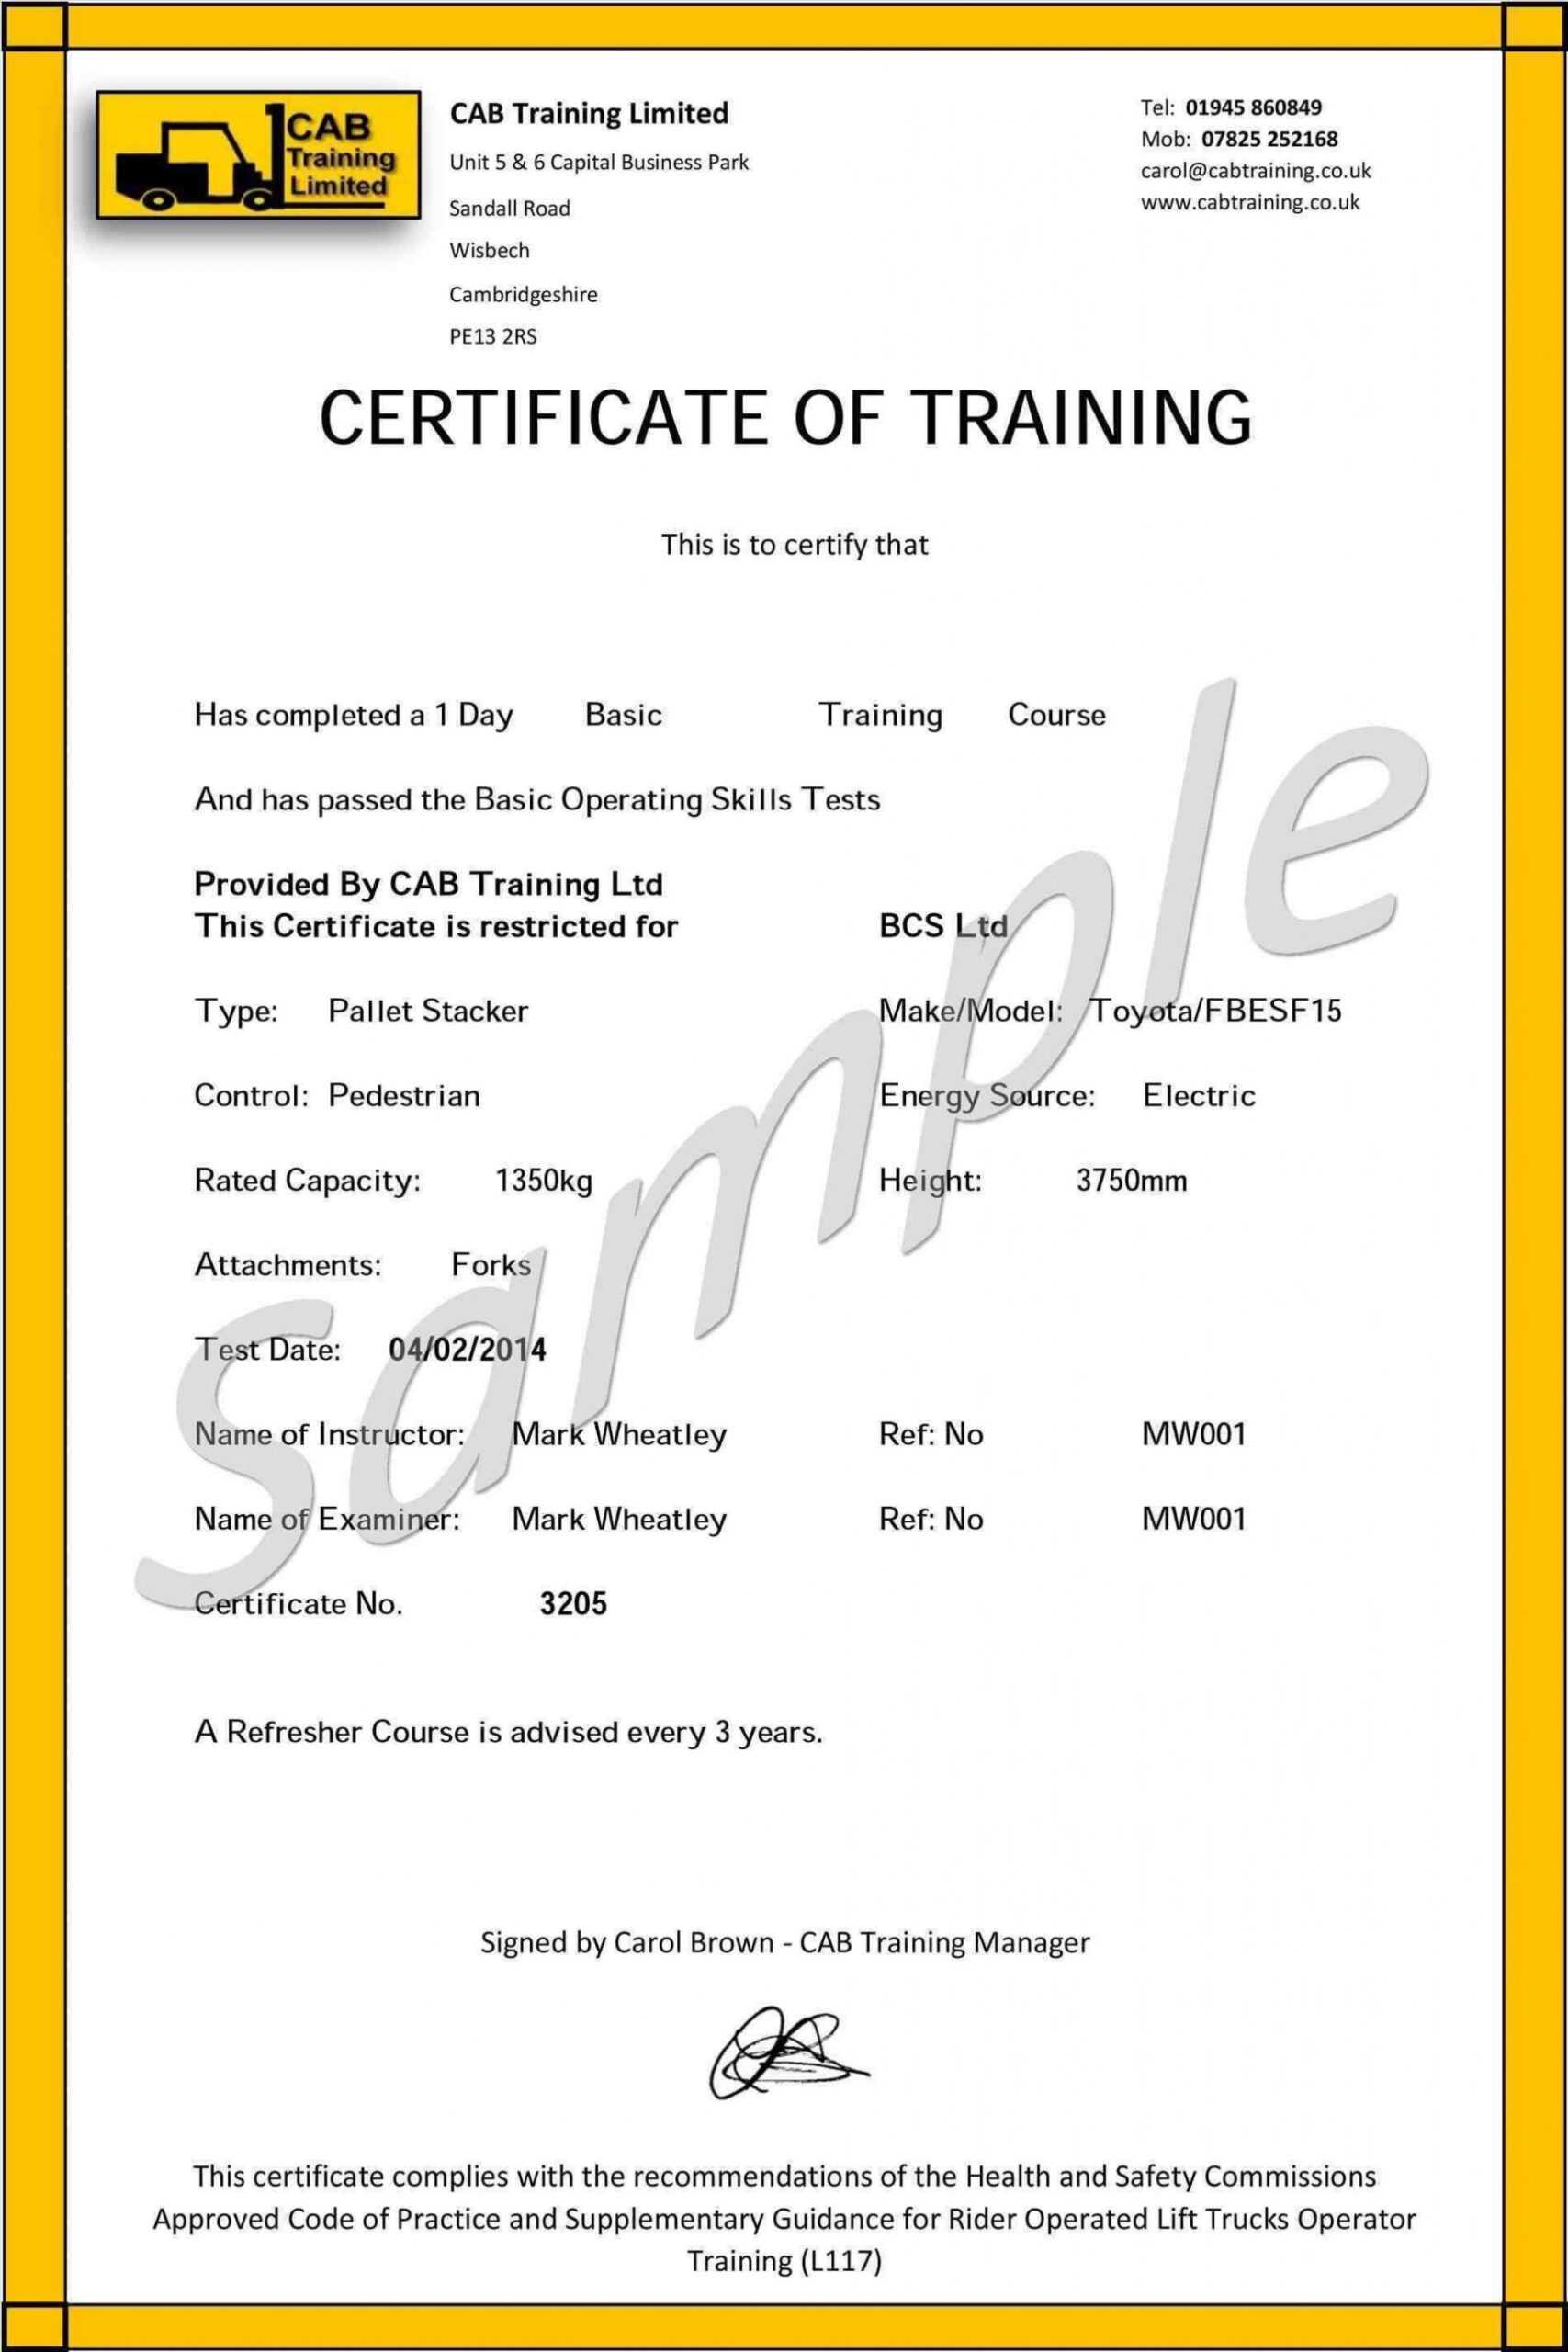 009 Forklift Certification Card Template Free Original Throughout Forklift Certification Template